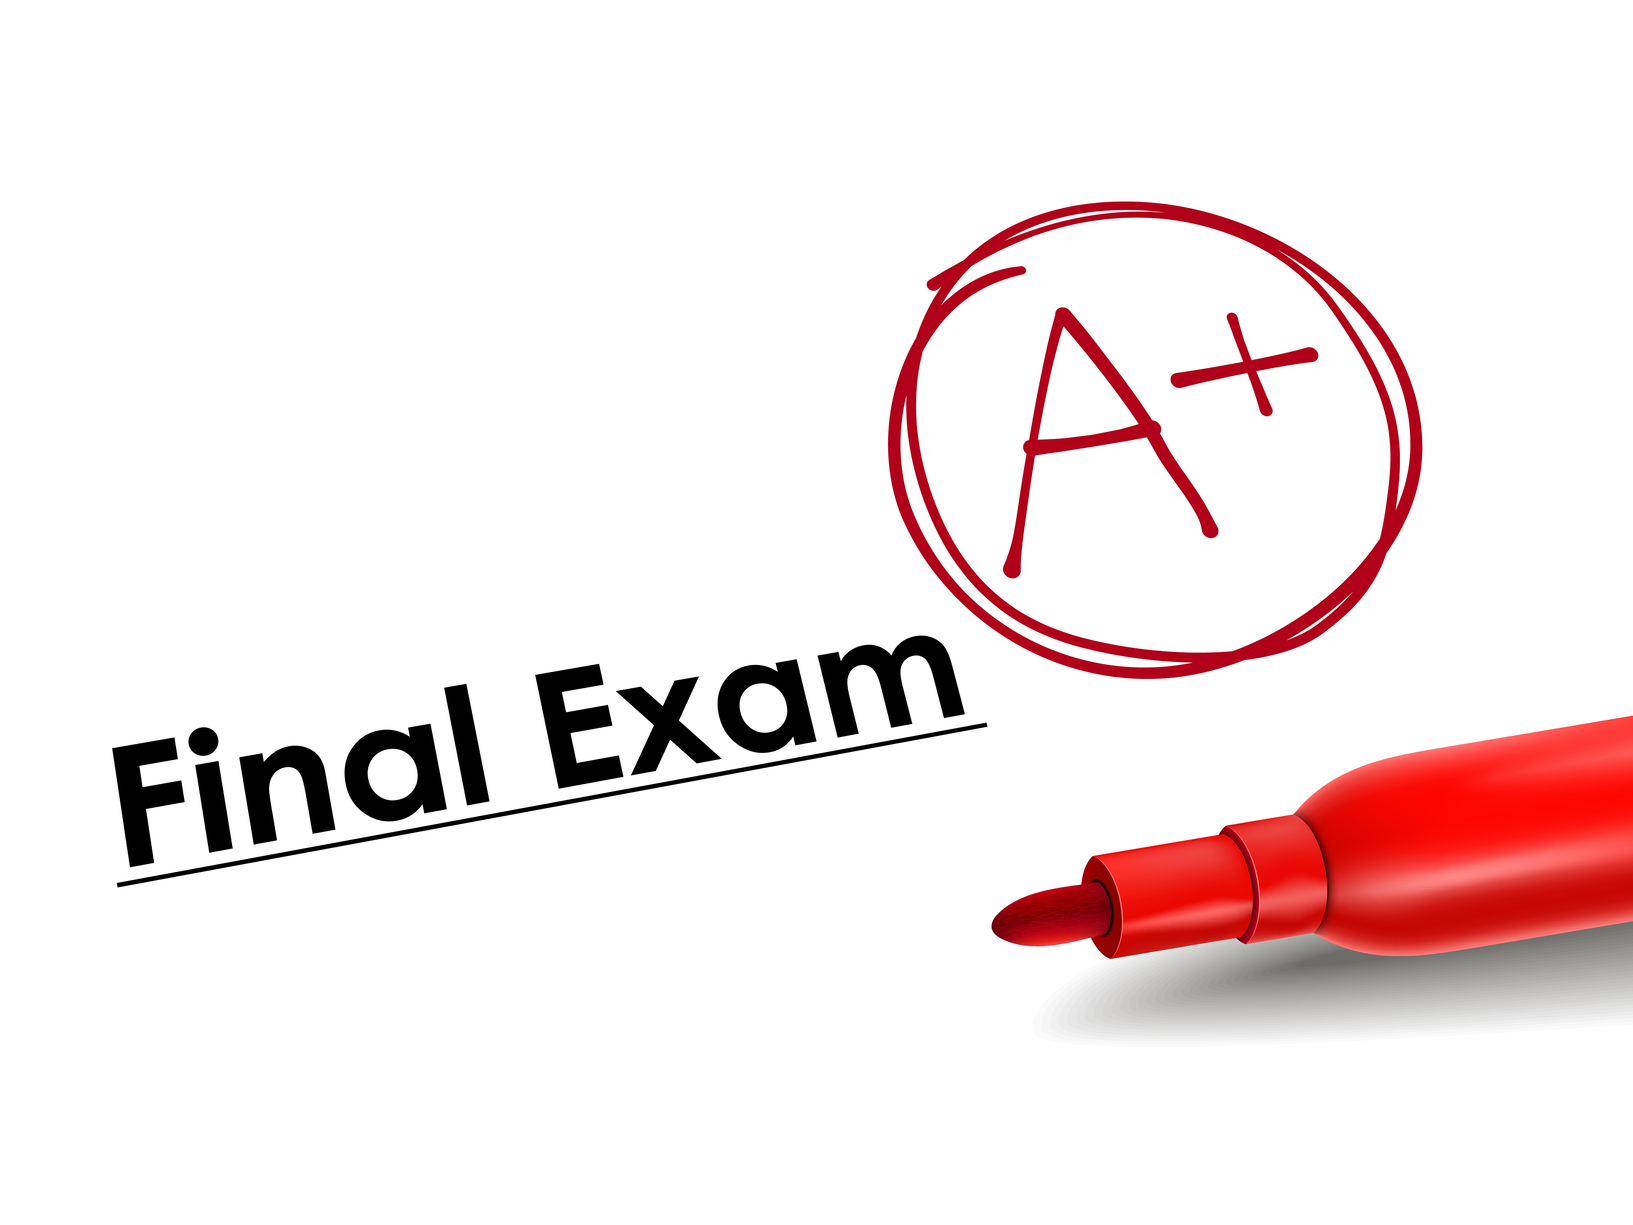 final exam 40902600 Penn foster exam answers just another wordpresscom site skip to content home about penn foster exam #03080801 – floral design – final | download.